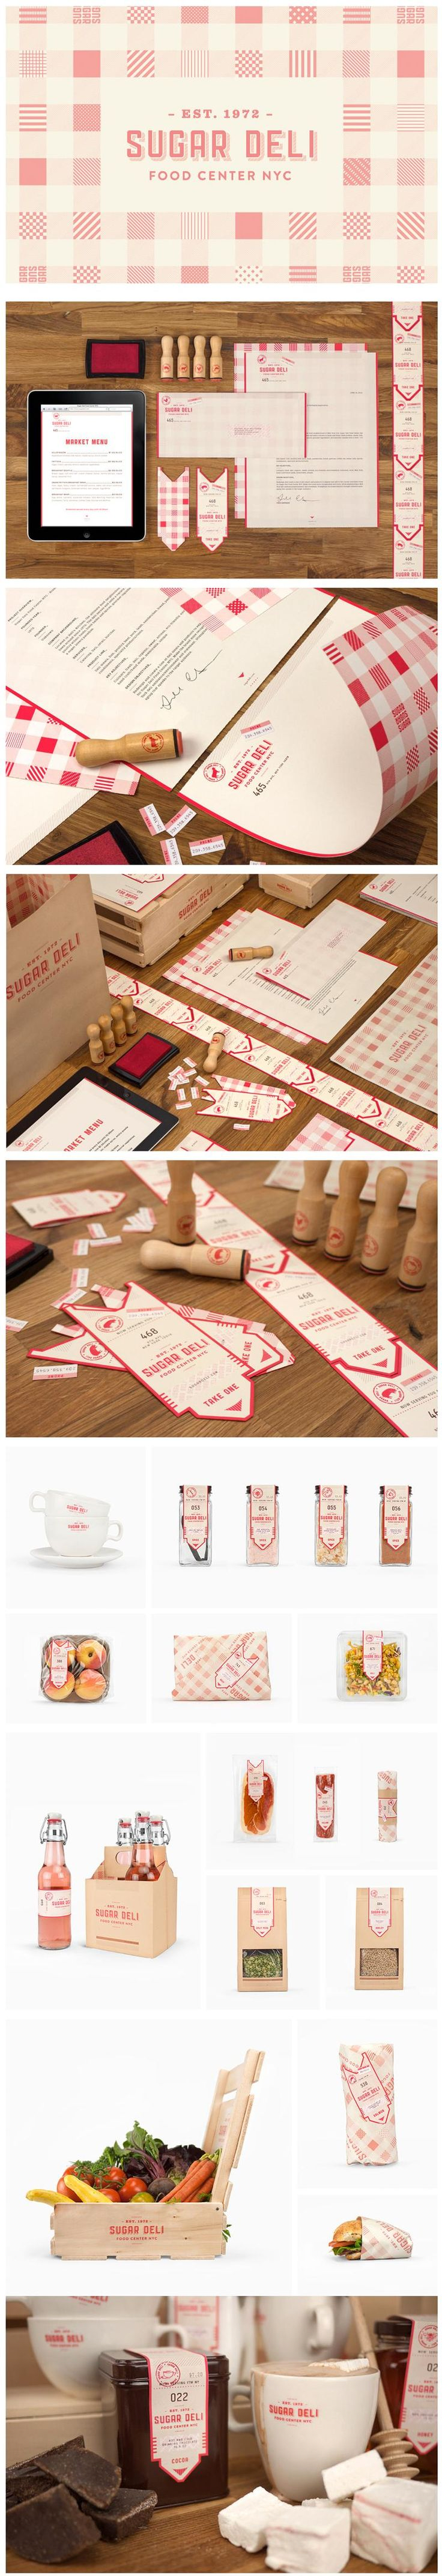 Sugar Deli- I like that this shows a cohesive branding identity, with business cards that are a play on the classic take a number system in a deli. Also I think the use of a stamp is a great way to bring the branding to other items.